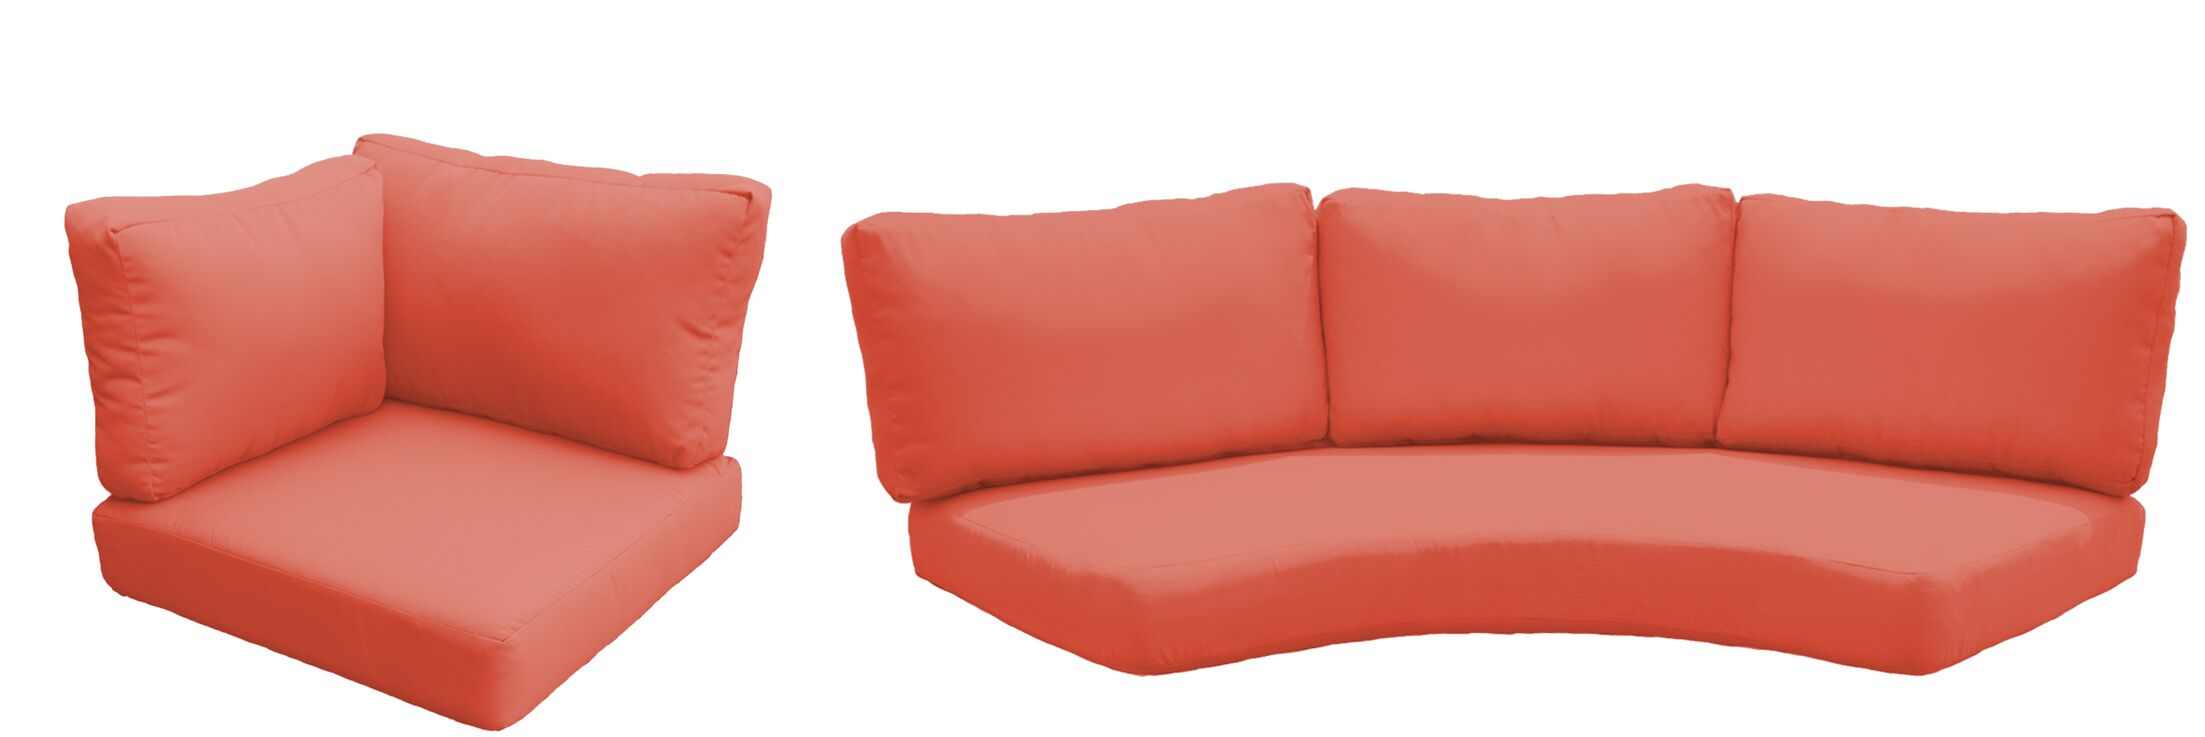 Barbados Outdoor Replacement Cushion Set Fabric: Tangerine